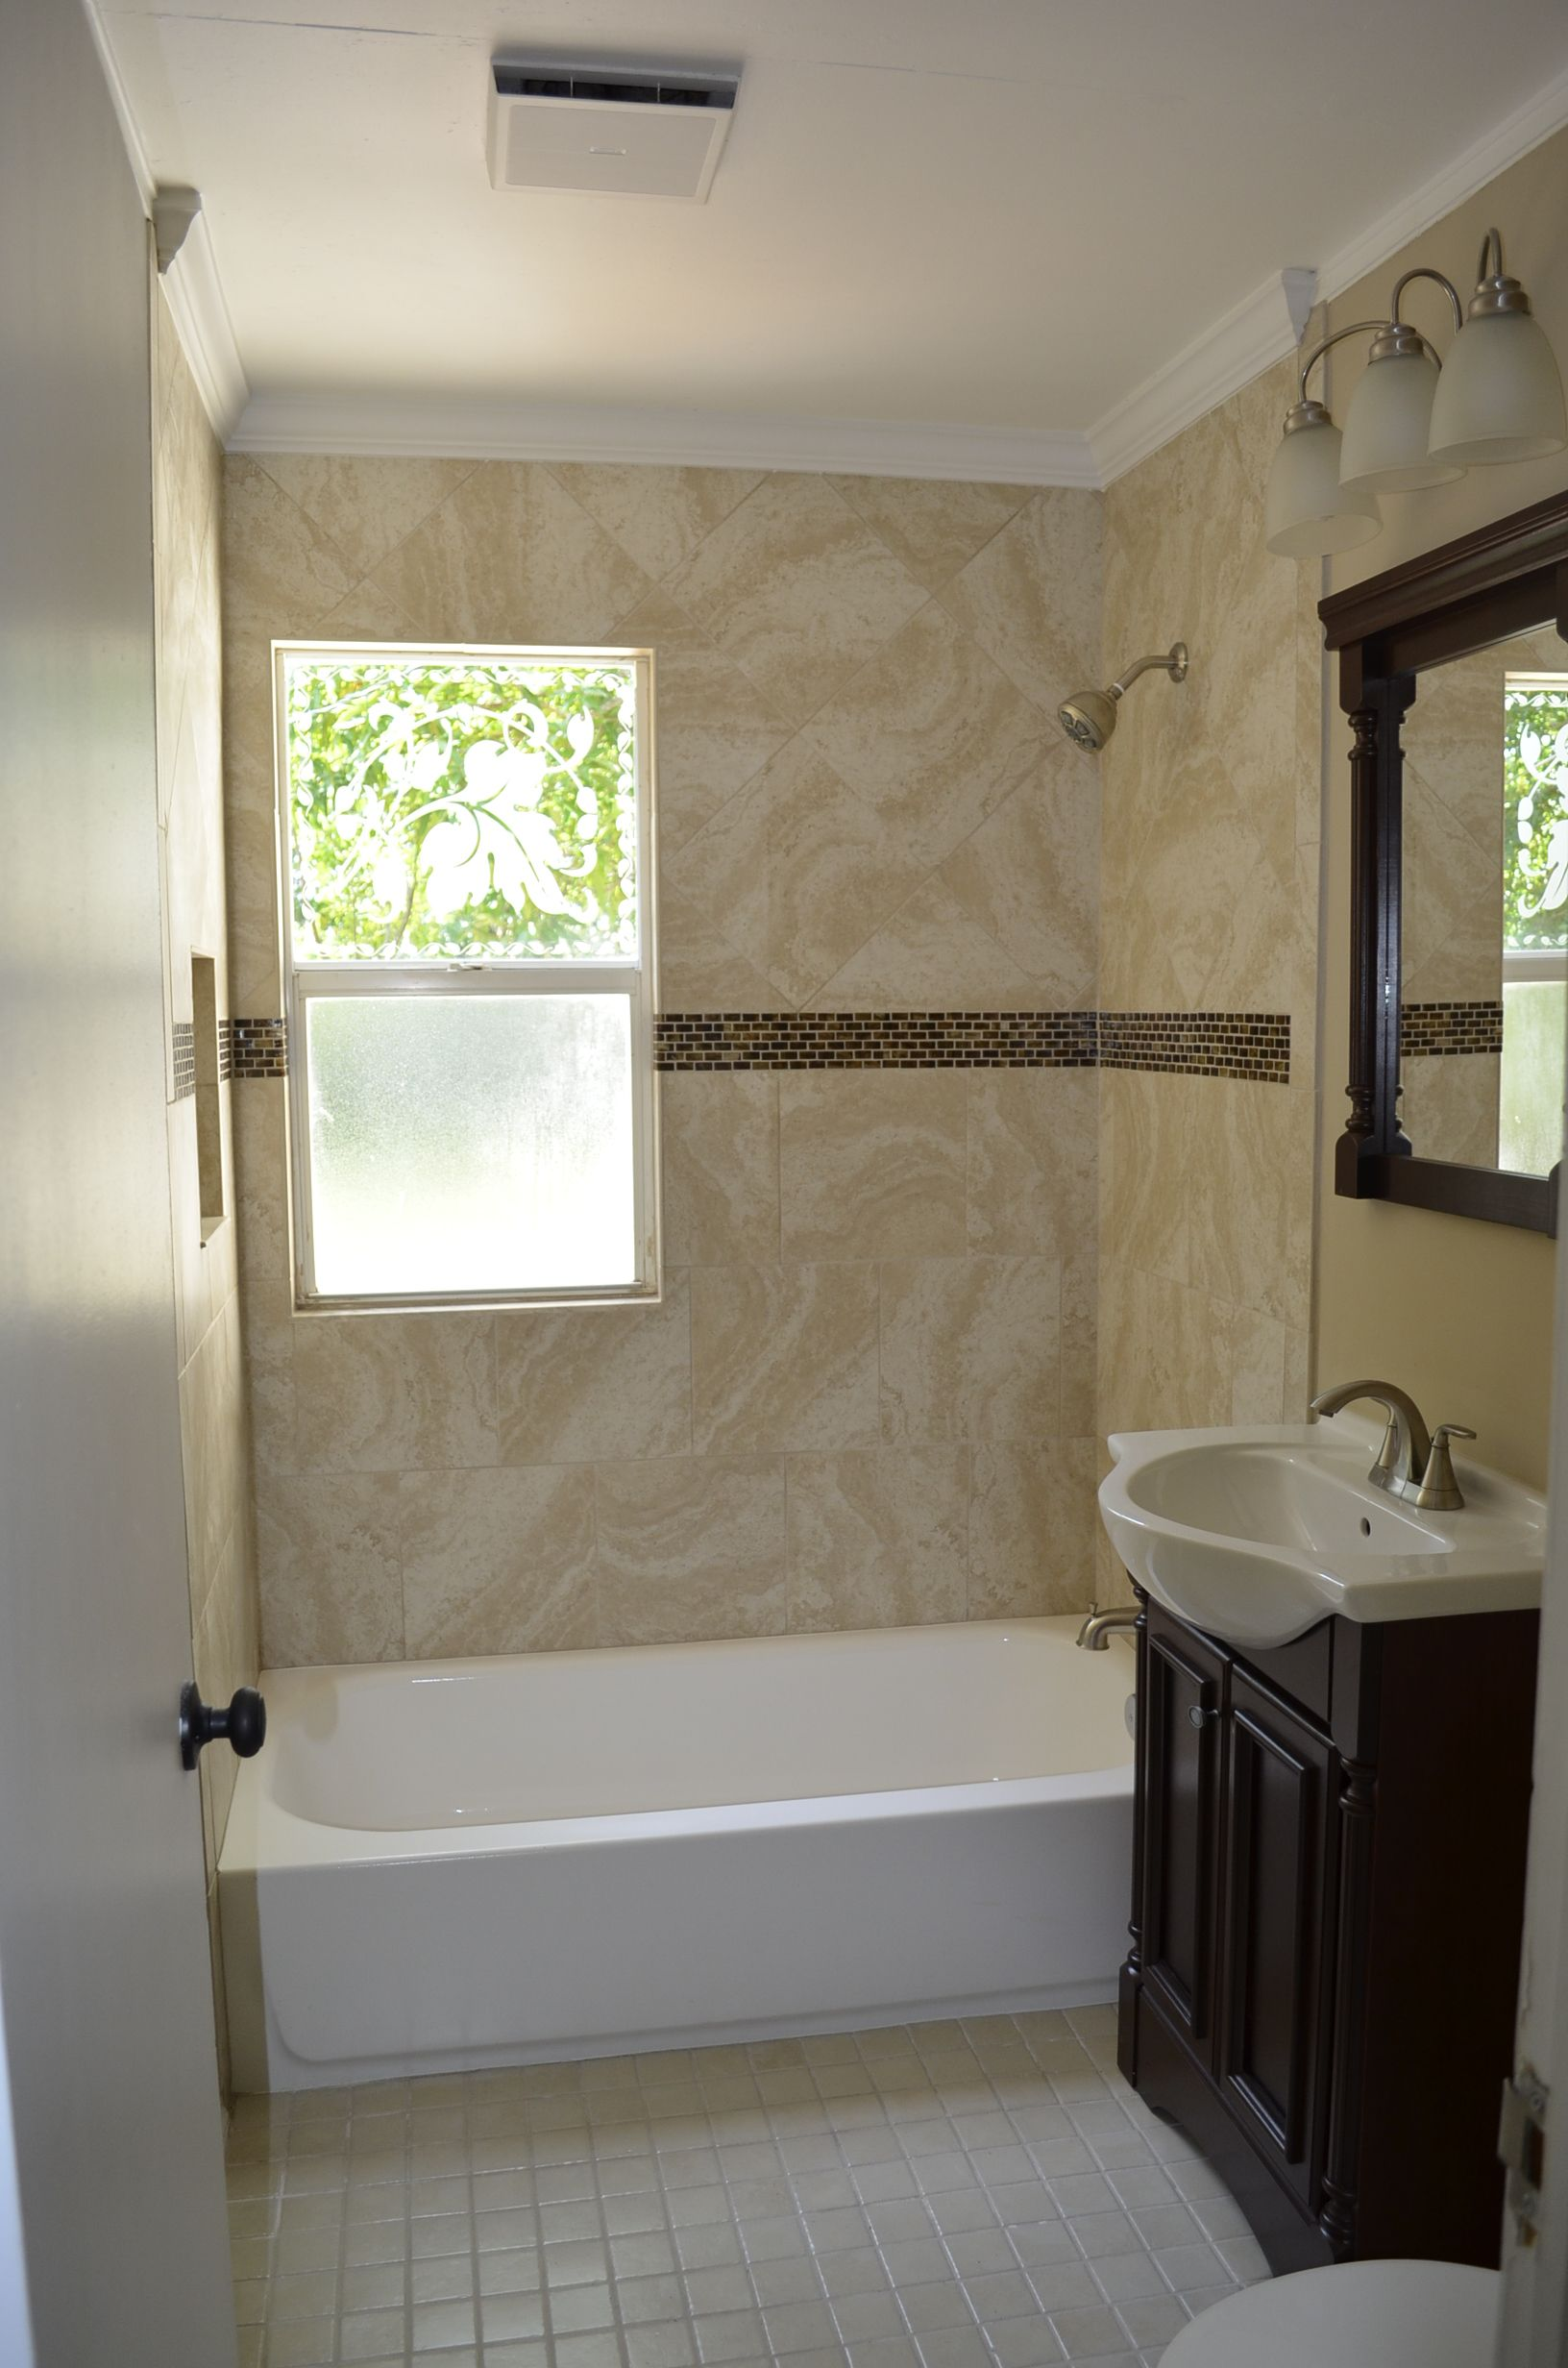 Historic Cottage Bathroom Remodel SFH In West Palm Beach - Historic bathroom remodel